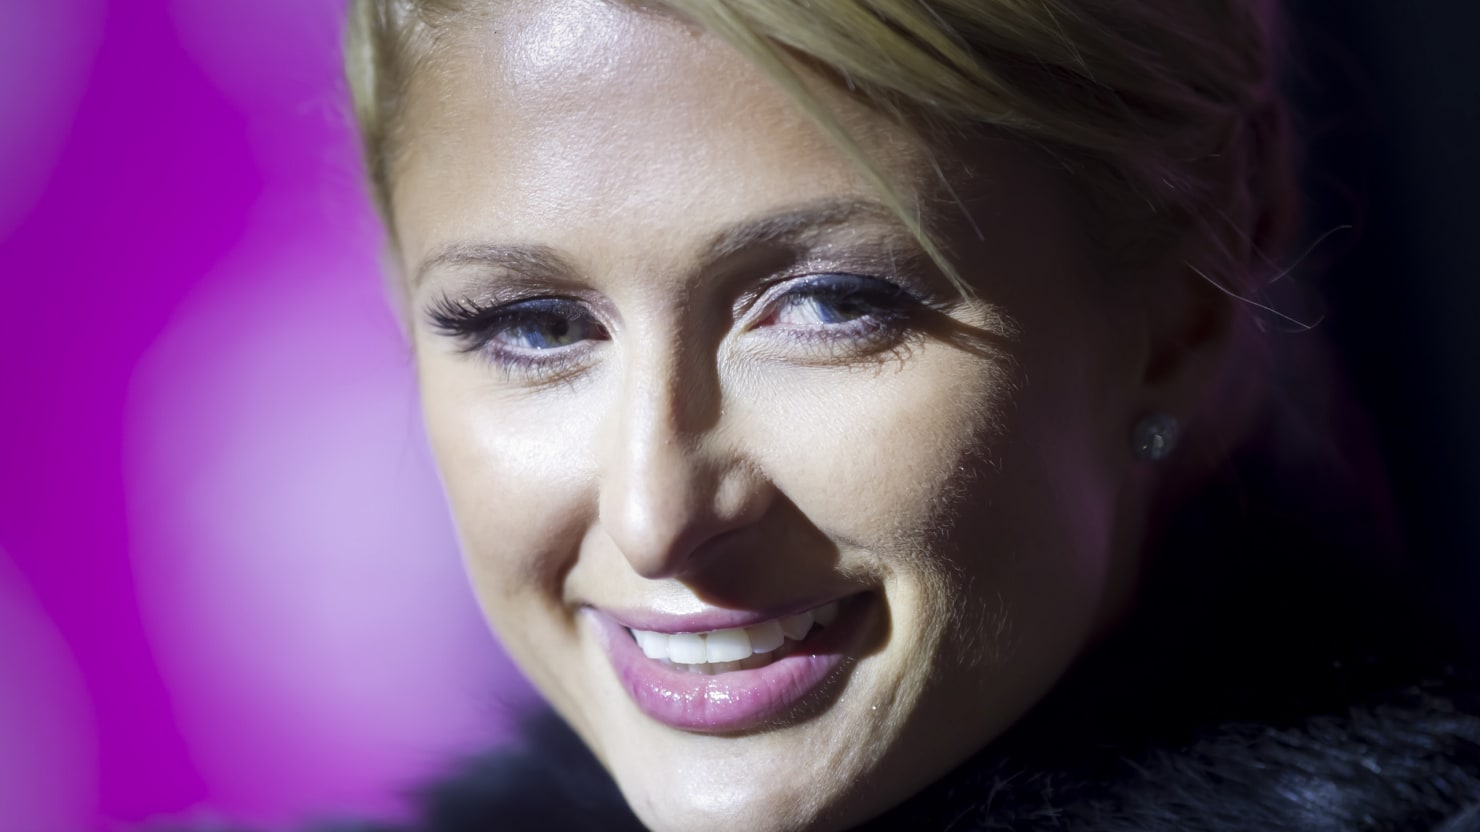 Paris hilton faces jail over repeated car stupidity